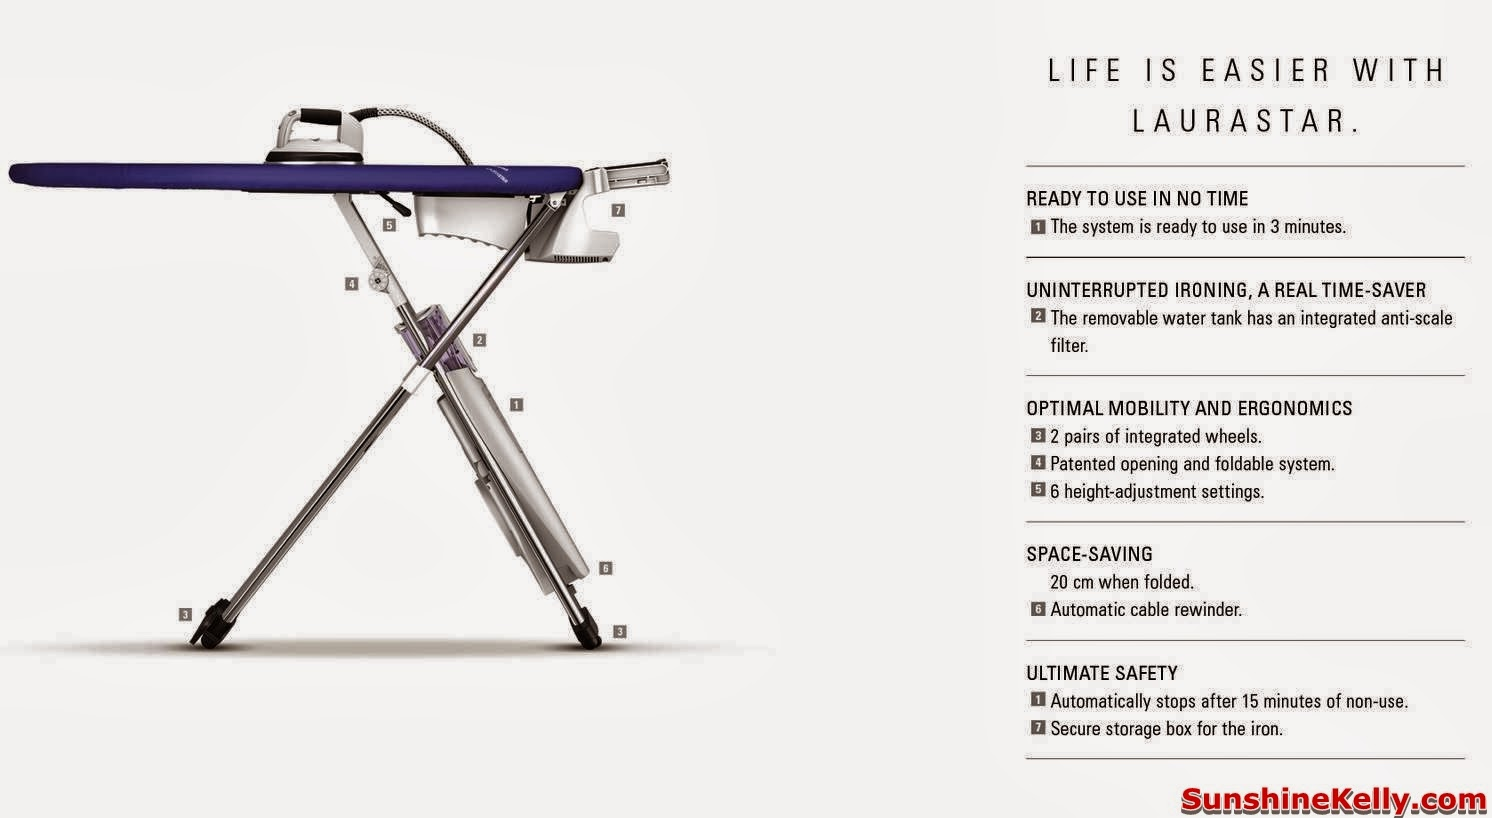 Laurastar, Laurastar Iron, Laurastar Lift, Laurastar Pulse, Make Life Wonderful, Easy Ironing